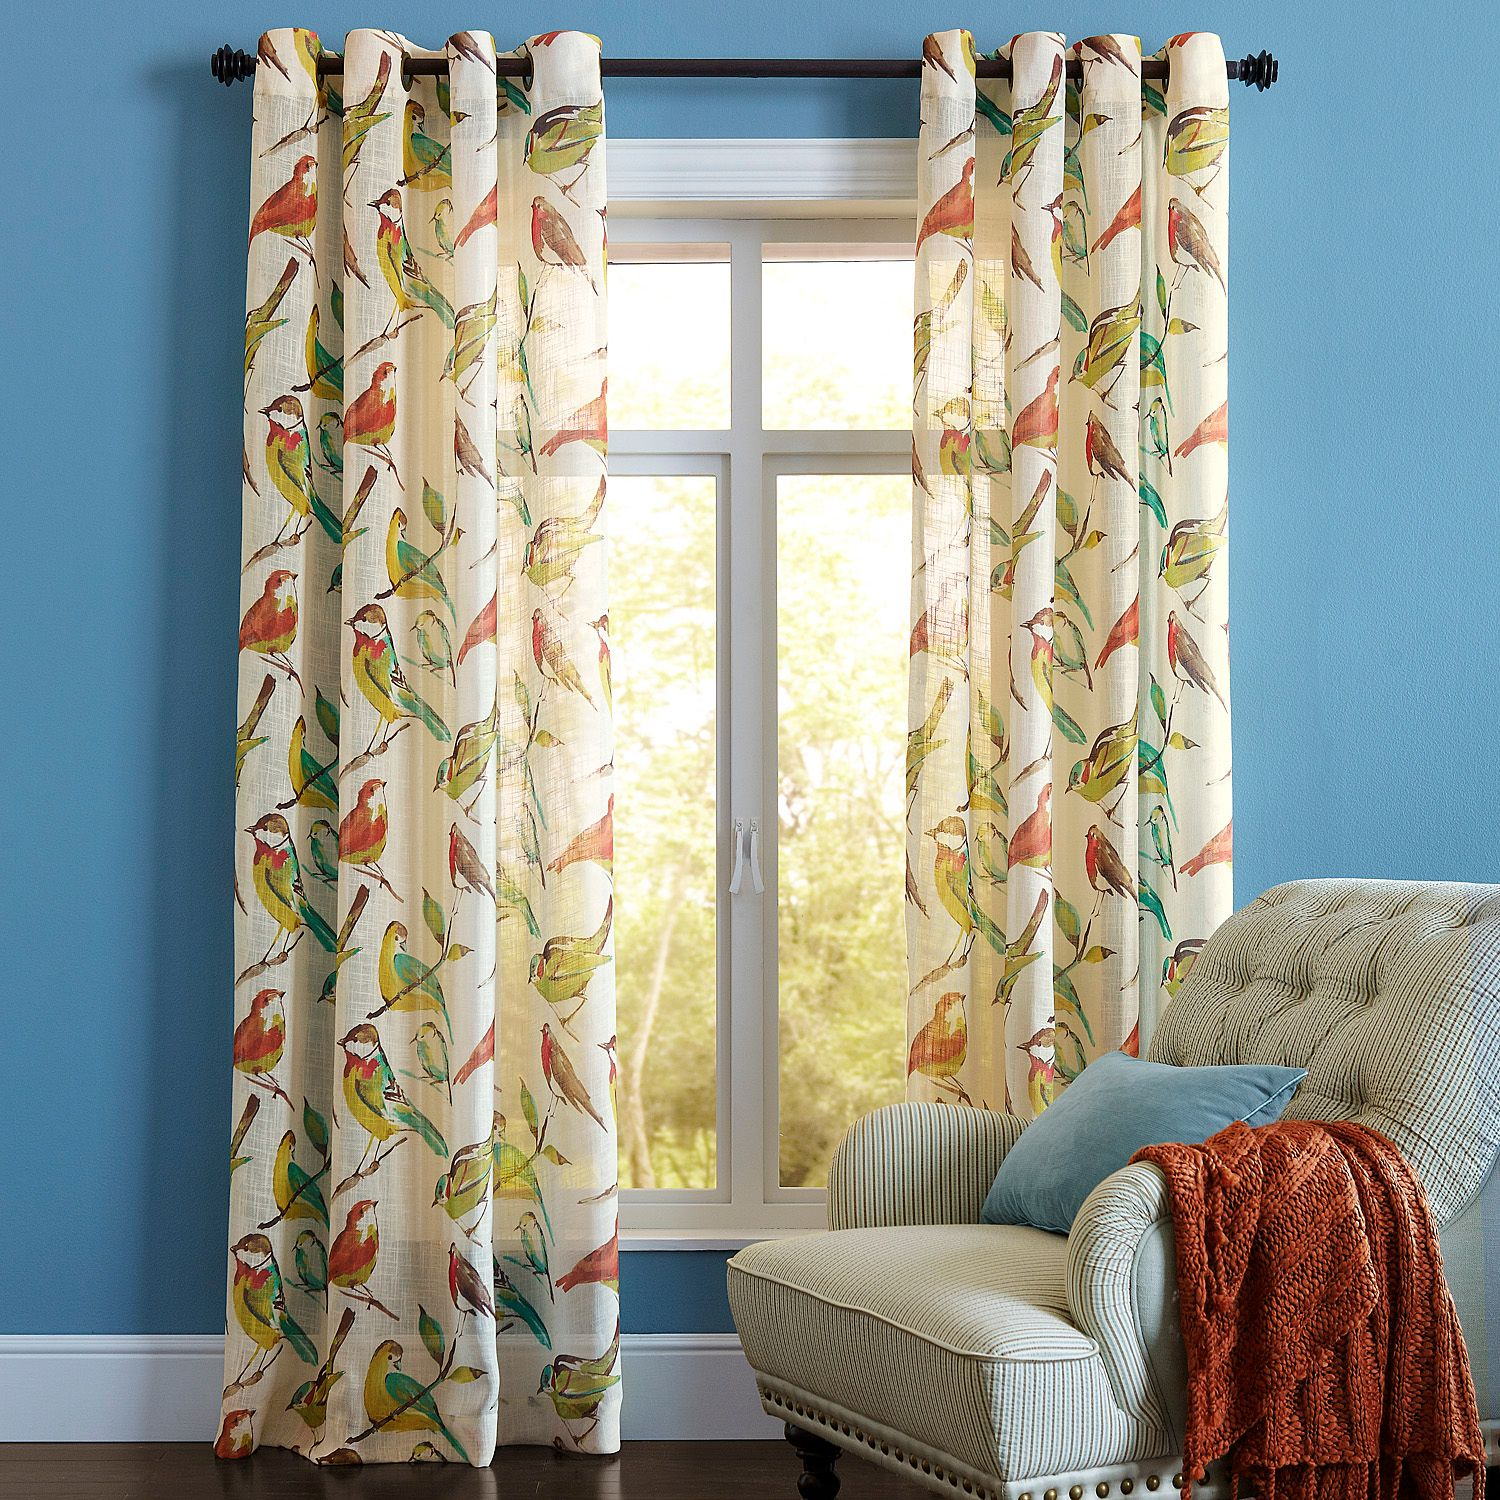 Birdwatcher Sheer Grommet Curtain